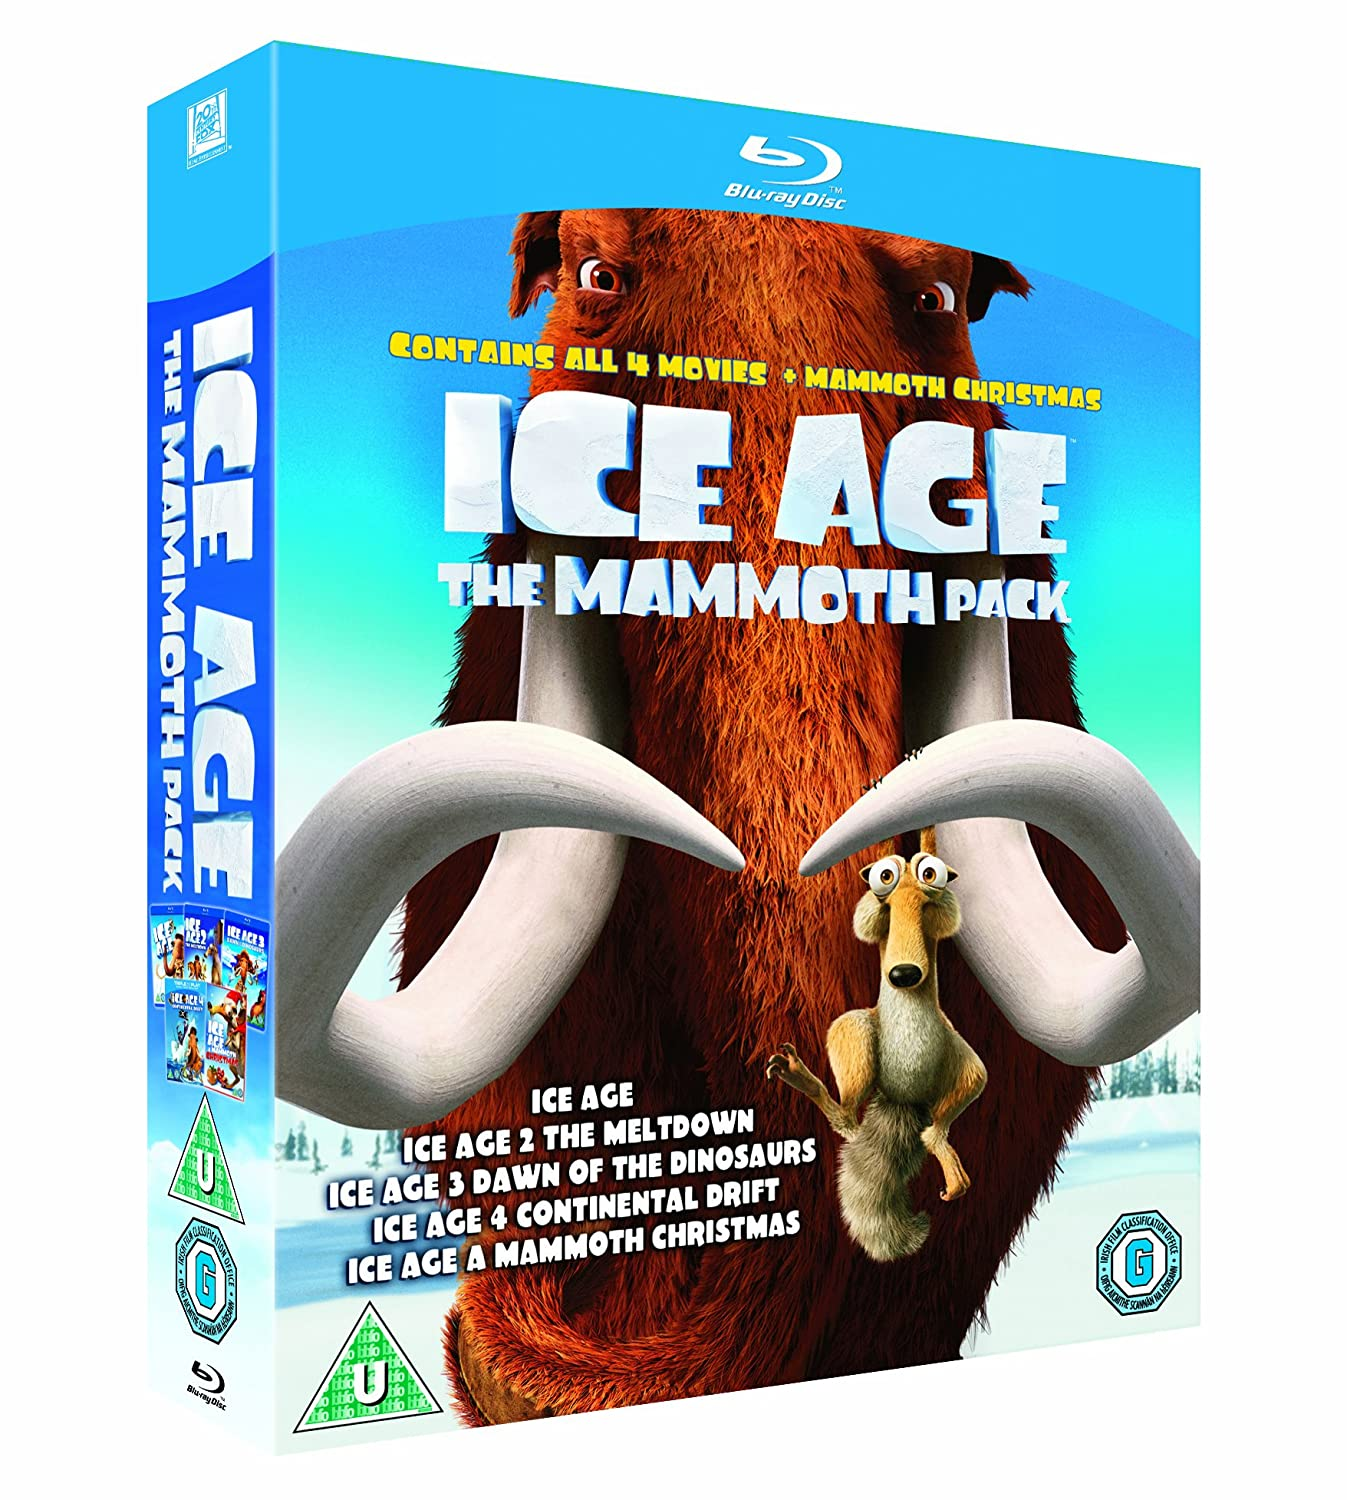 Ice Age 1-4 plus Mammoth Christmas: The Mammoth Collection Blu-ray ...